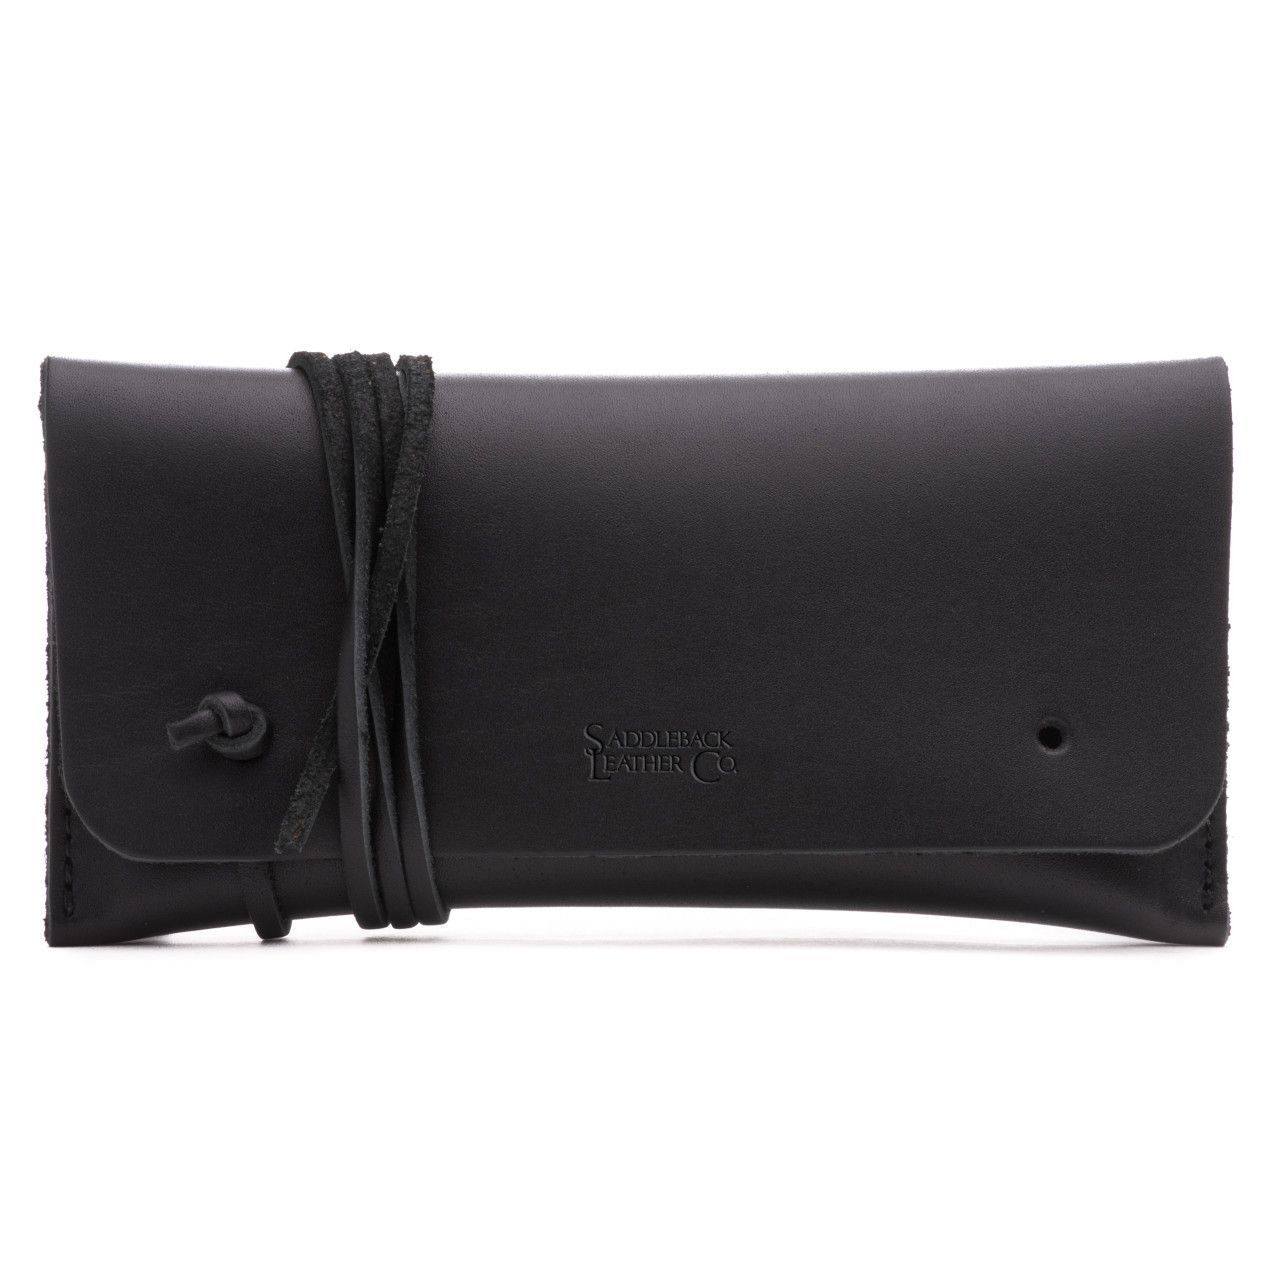 leather sunglass case in black leather